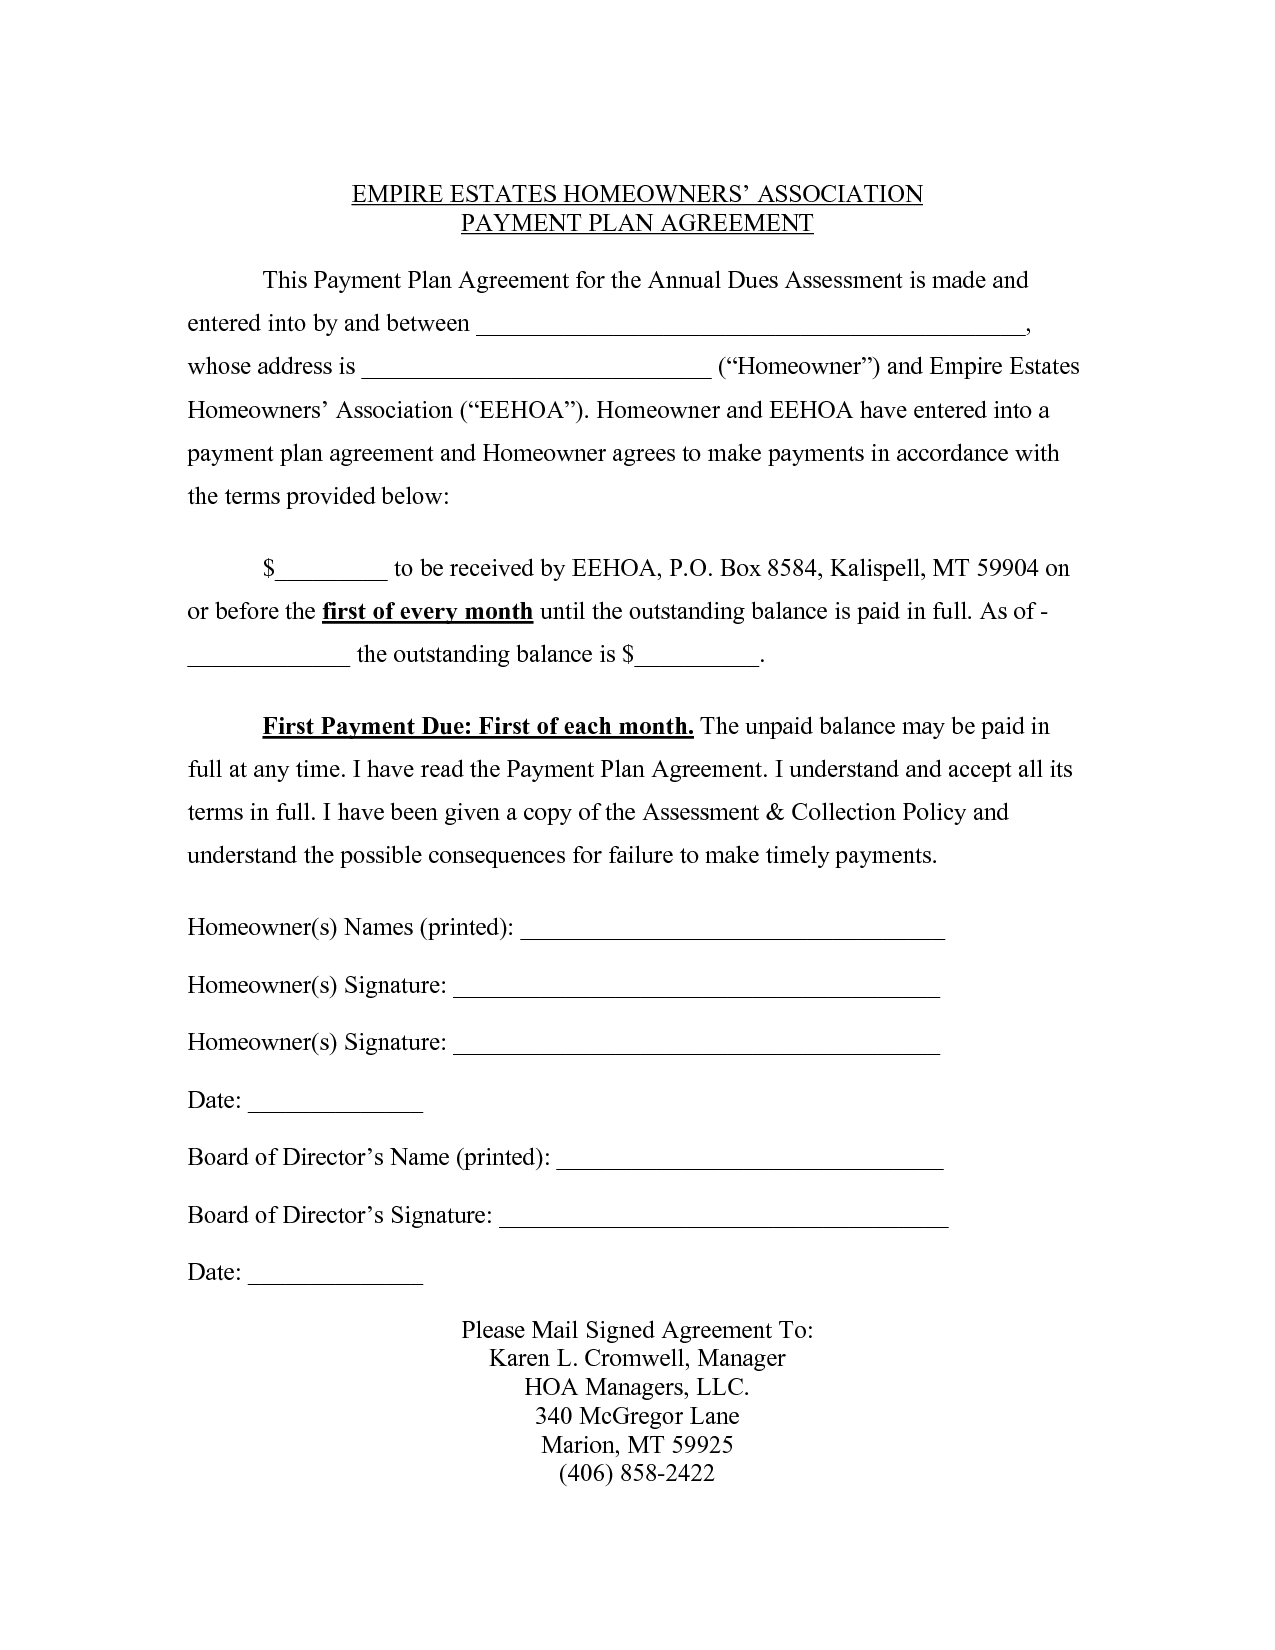 loan agreement template microsoft word templates qpfwvy.html